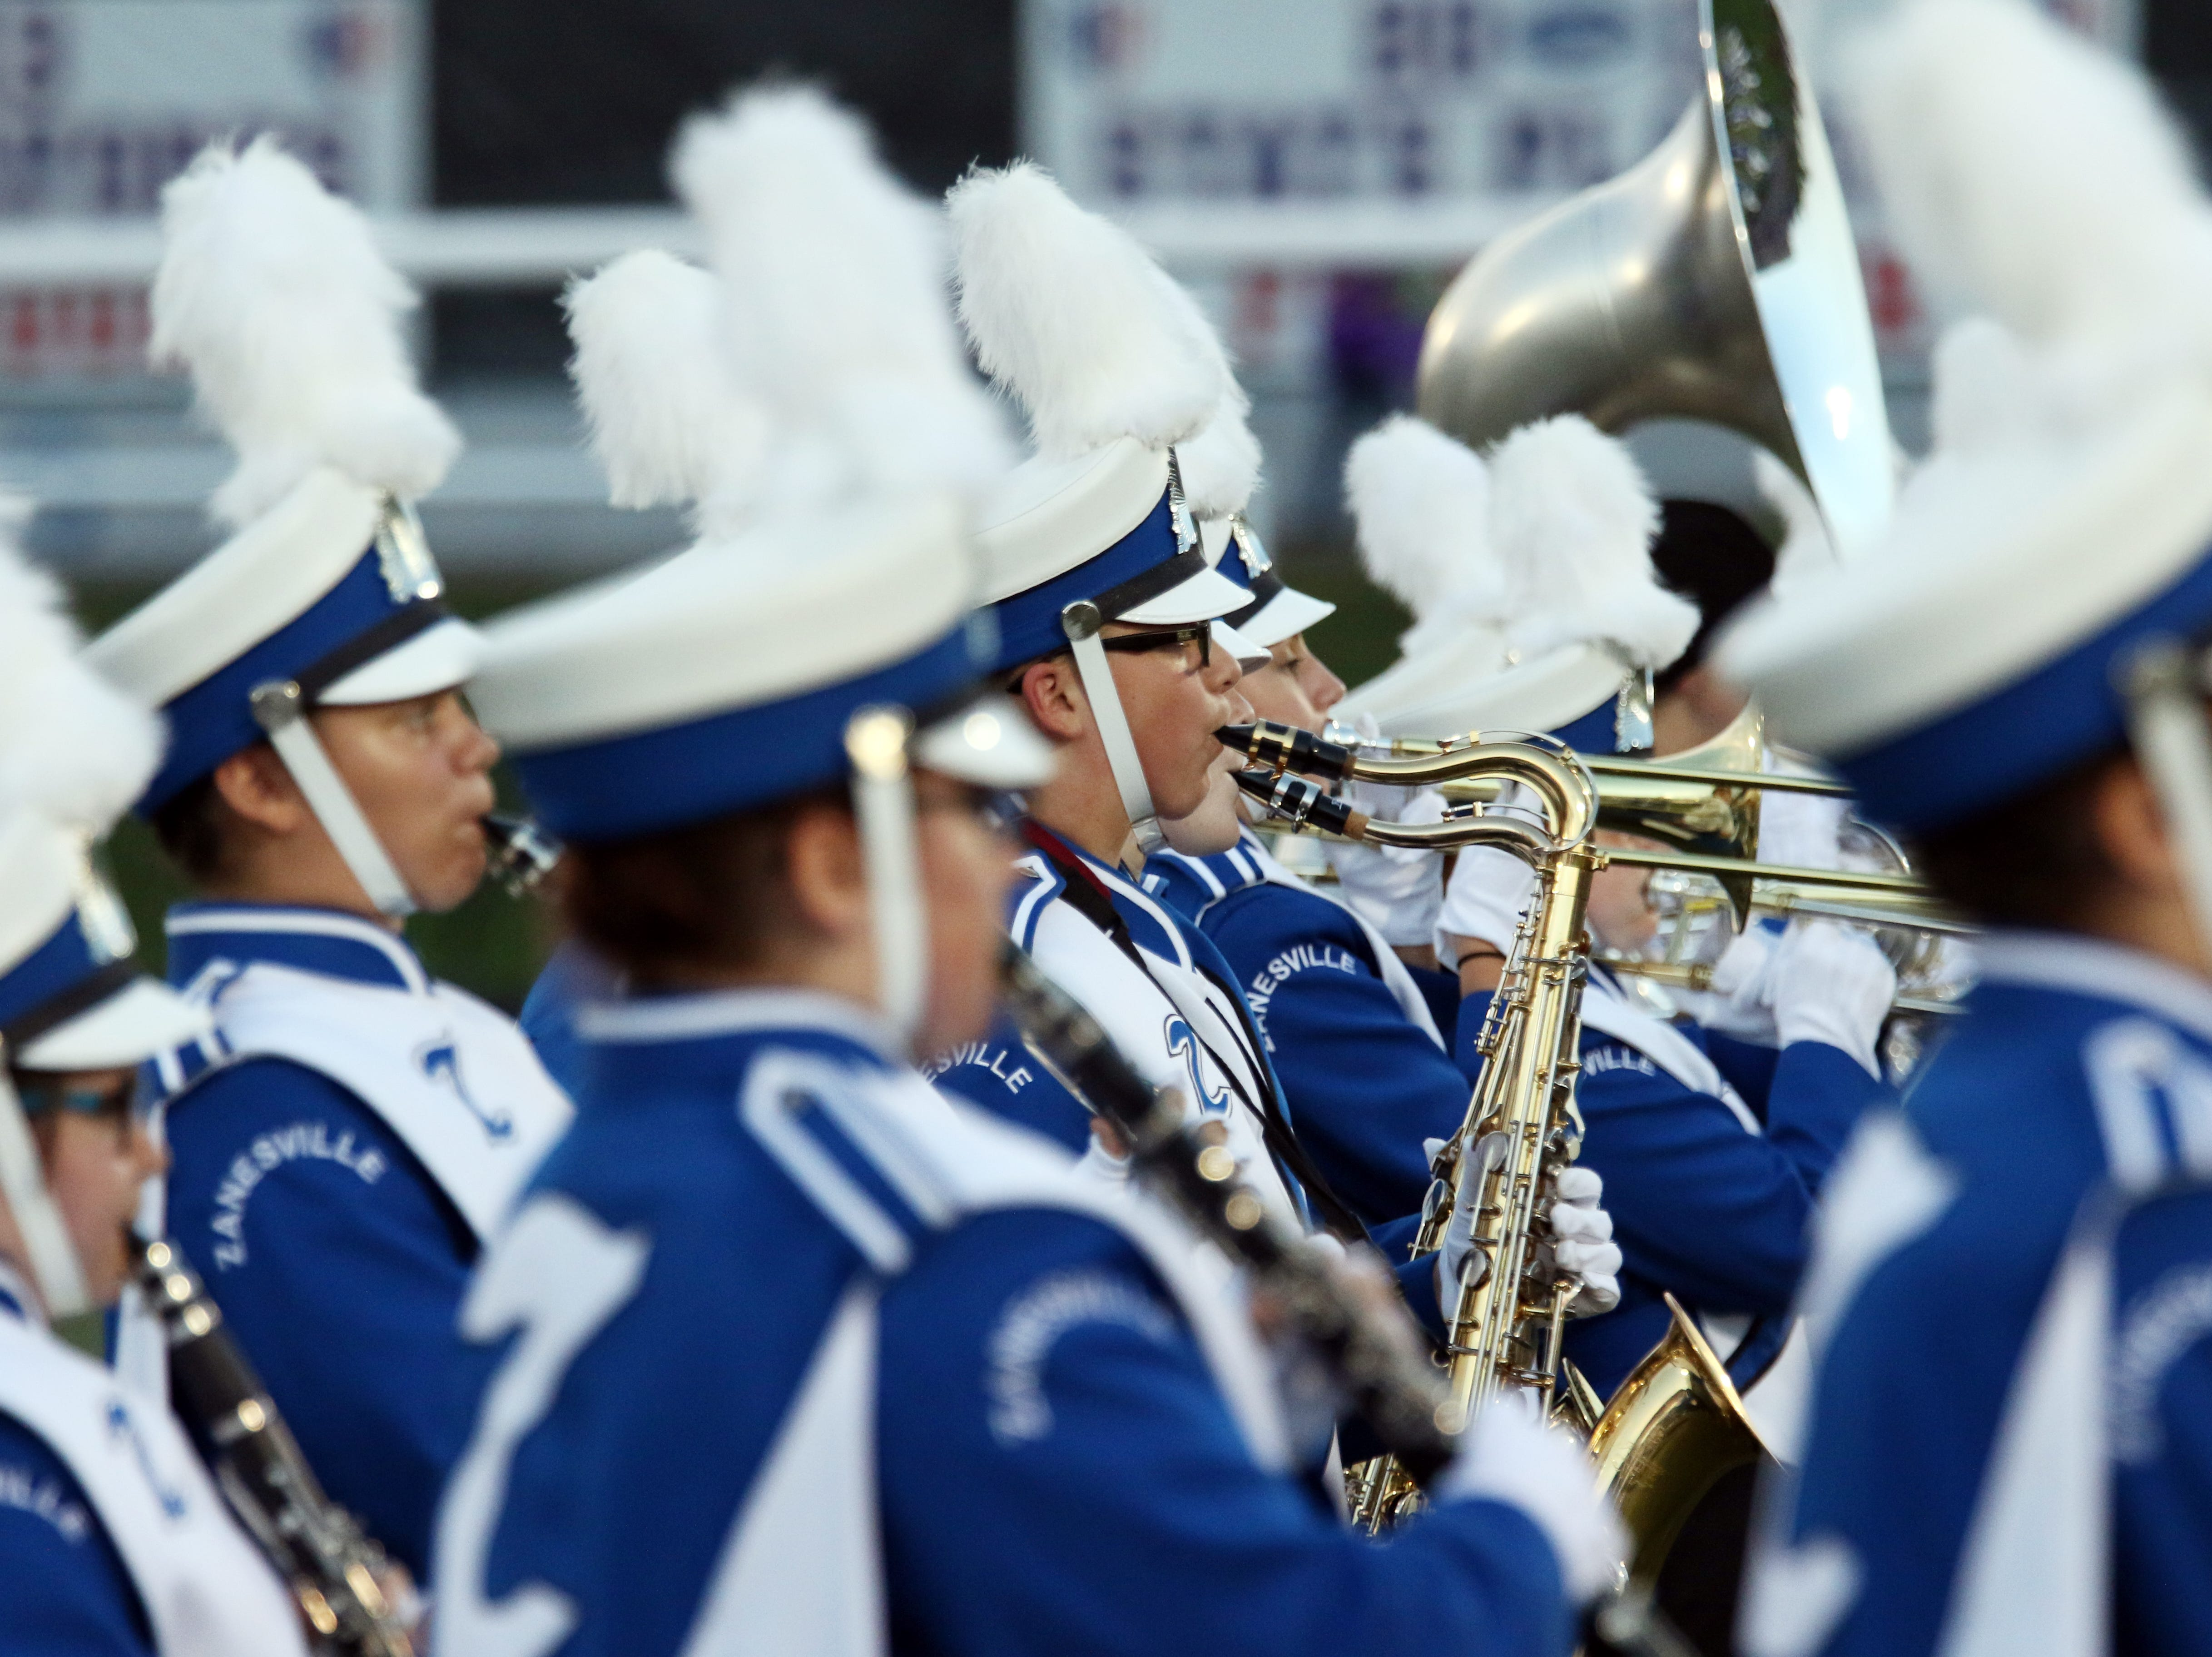 The Zanesville High School marching band performs before Friday's game against Logan.